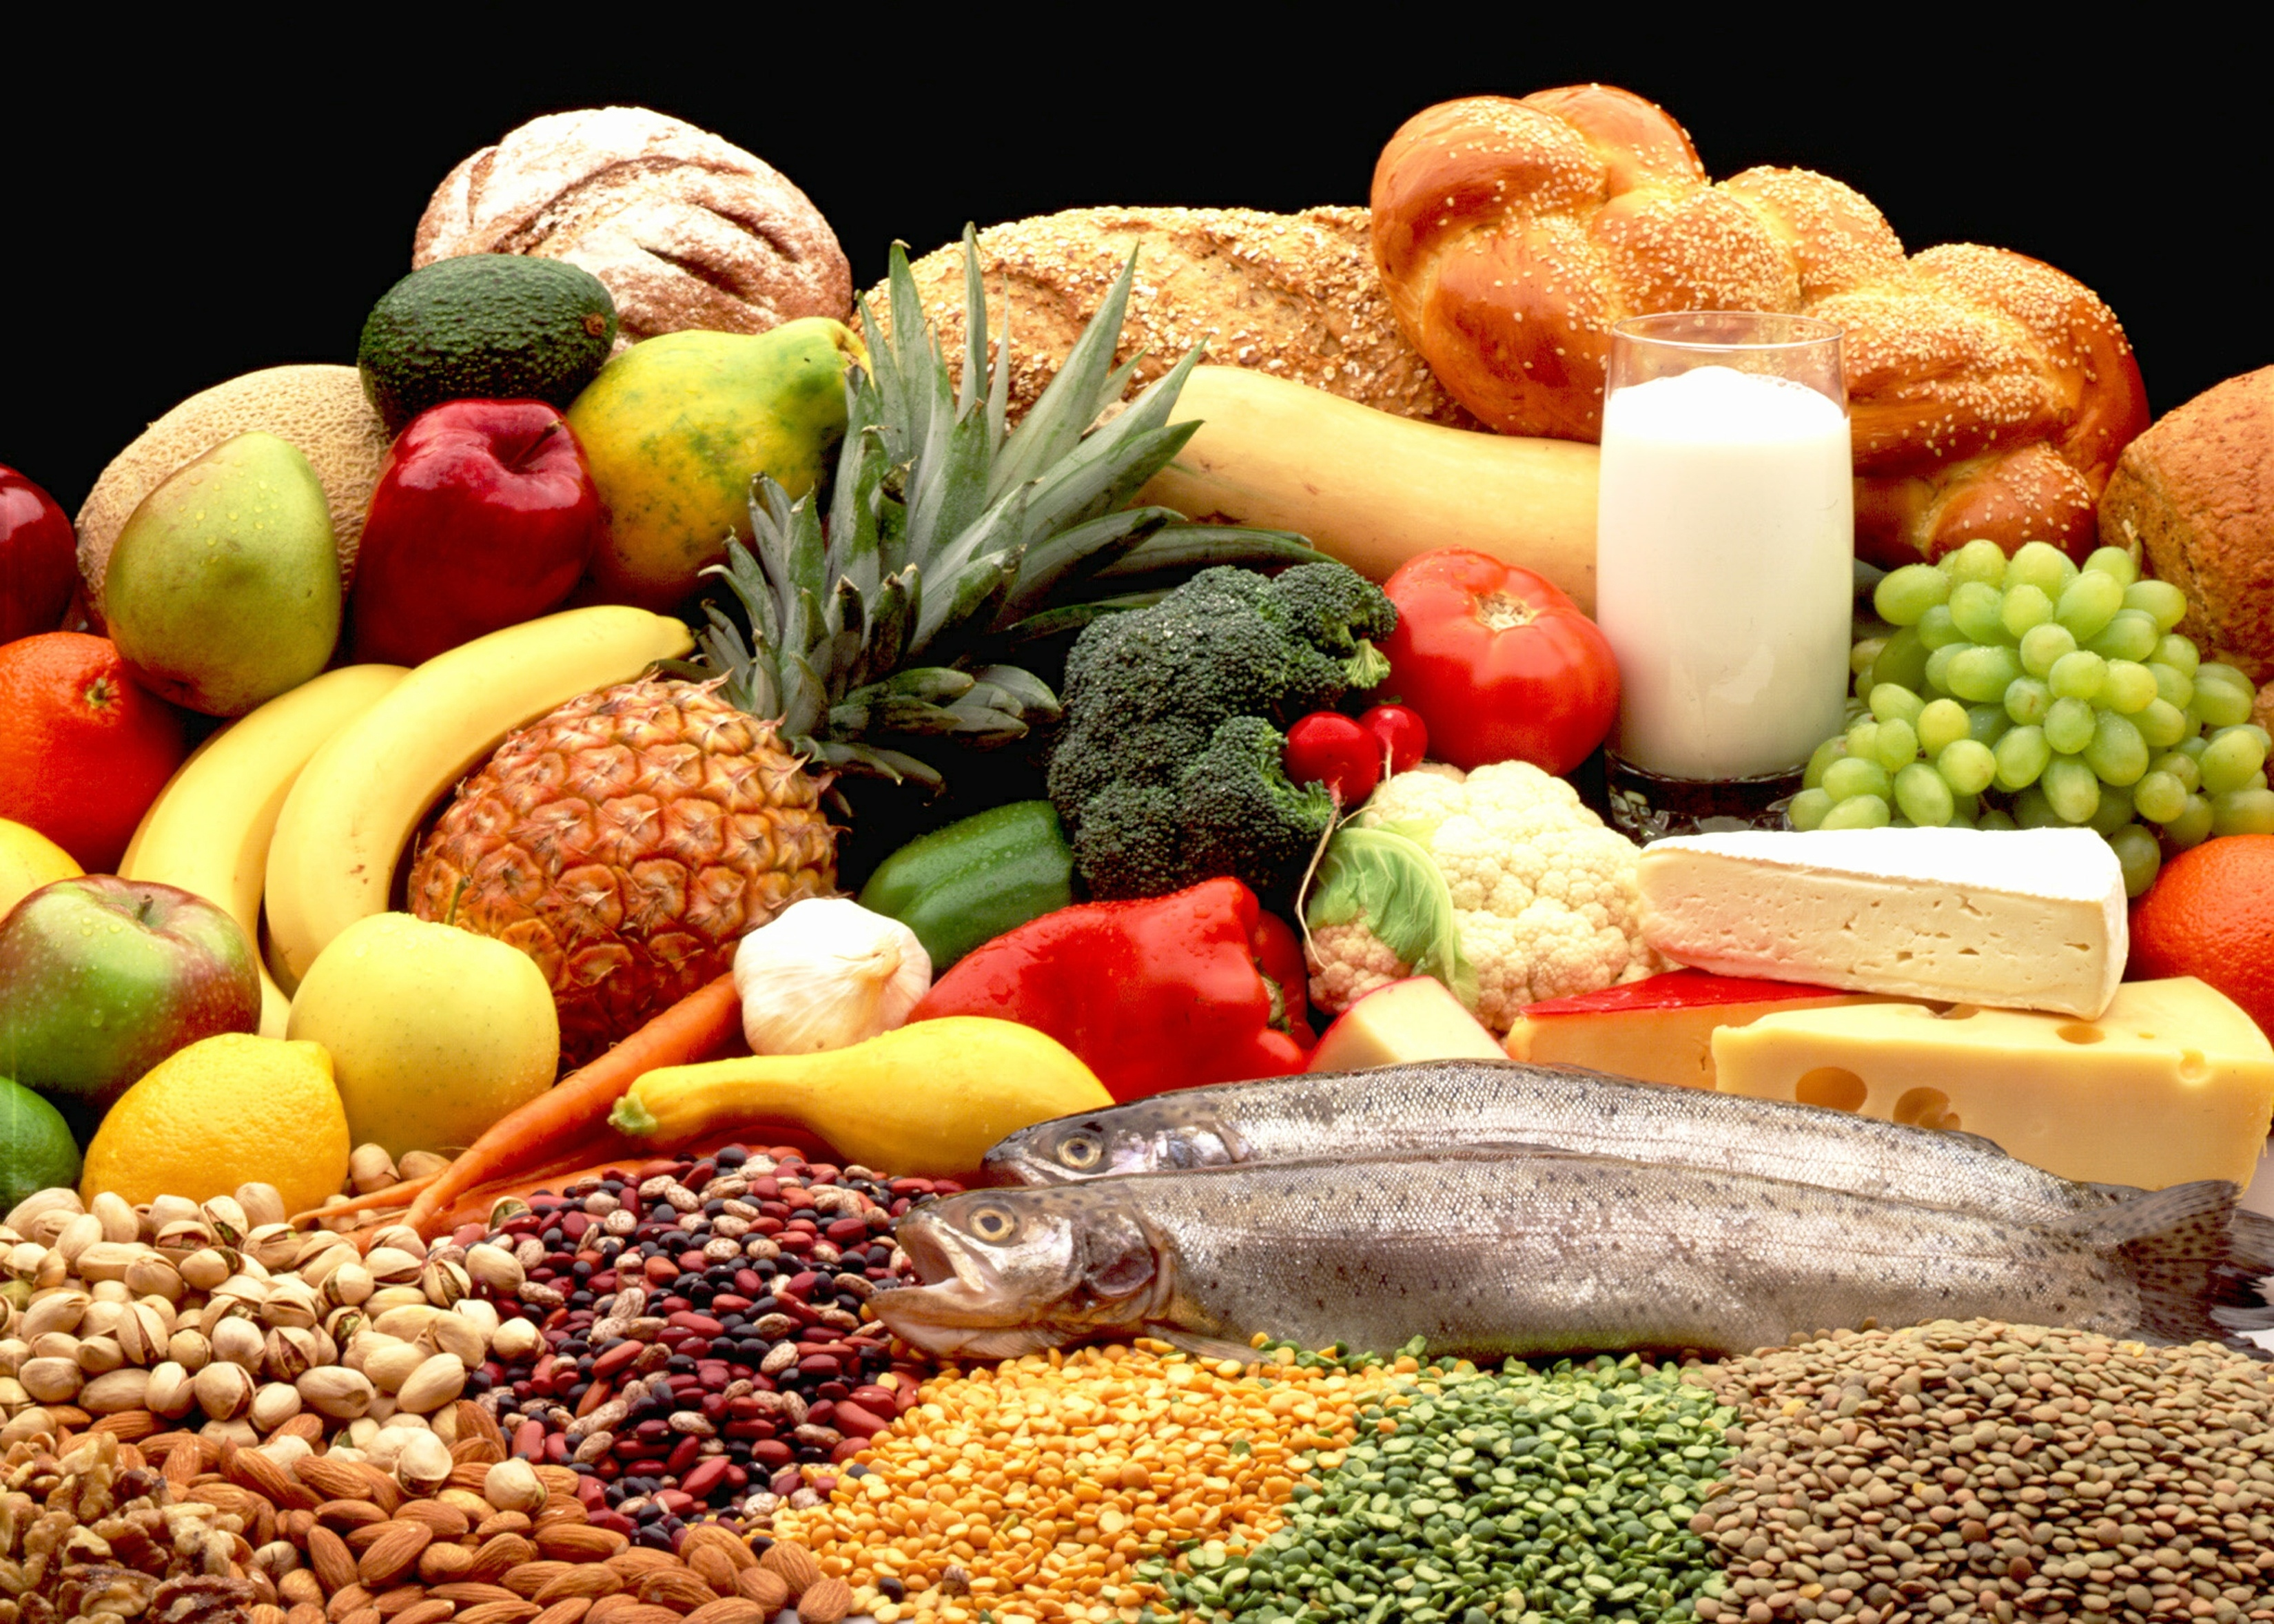 Many plant foods offer good amounts of soluble and insoluble fiber.